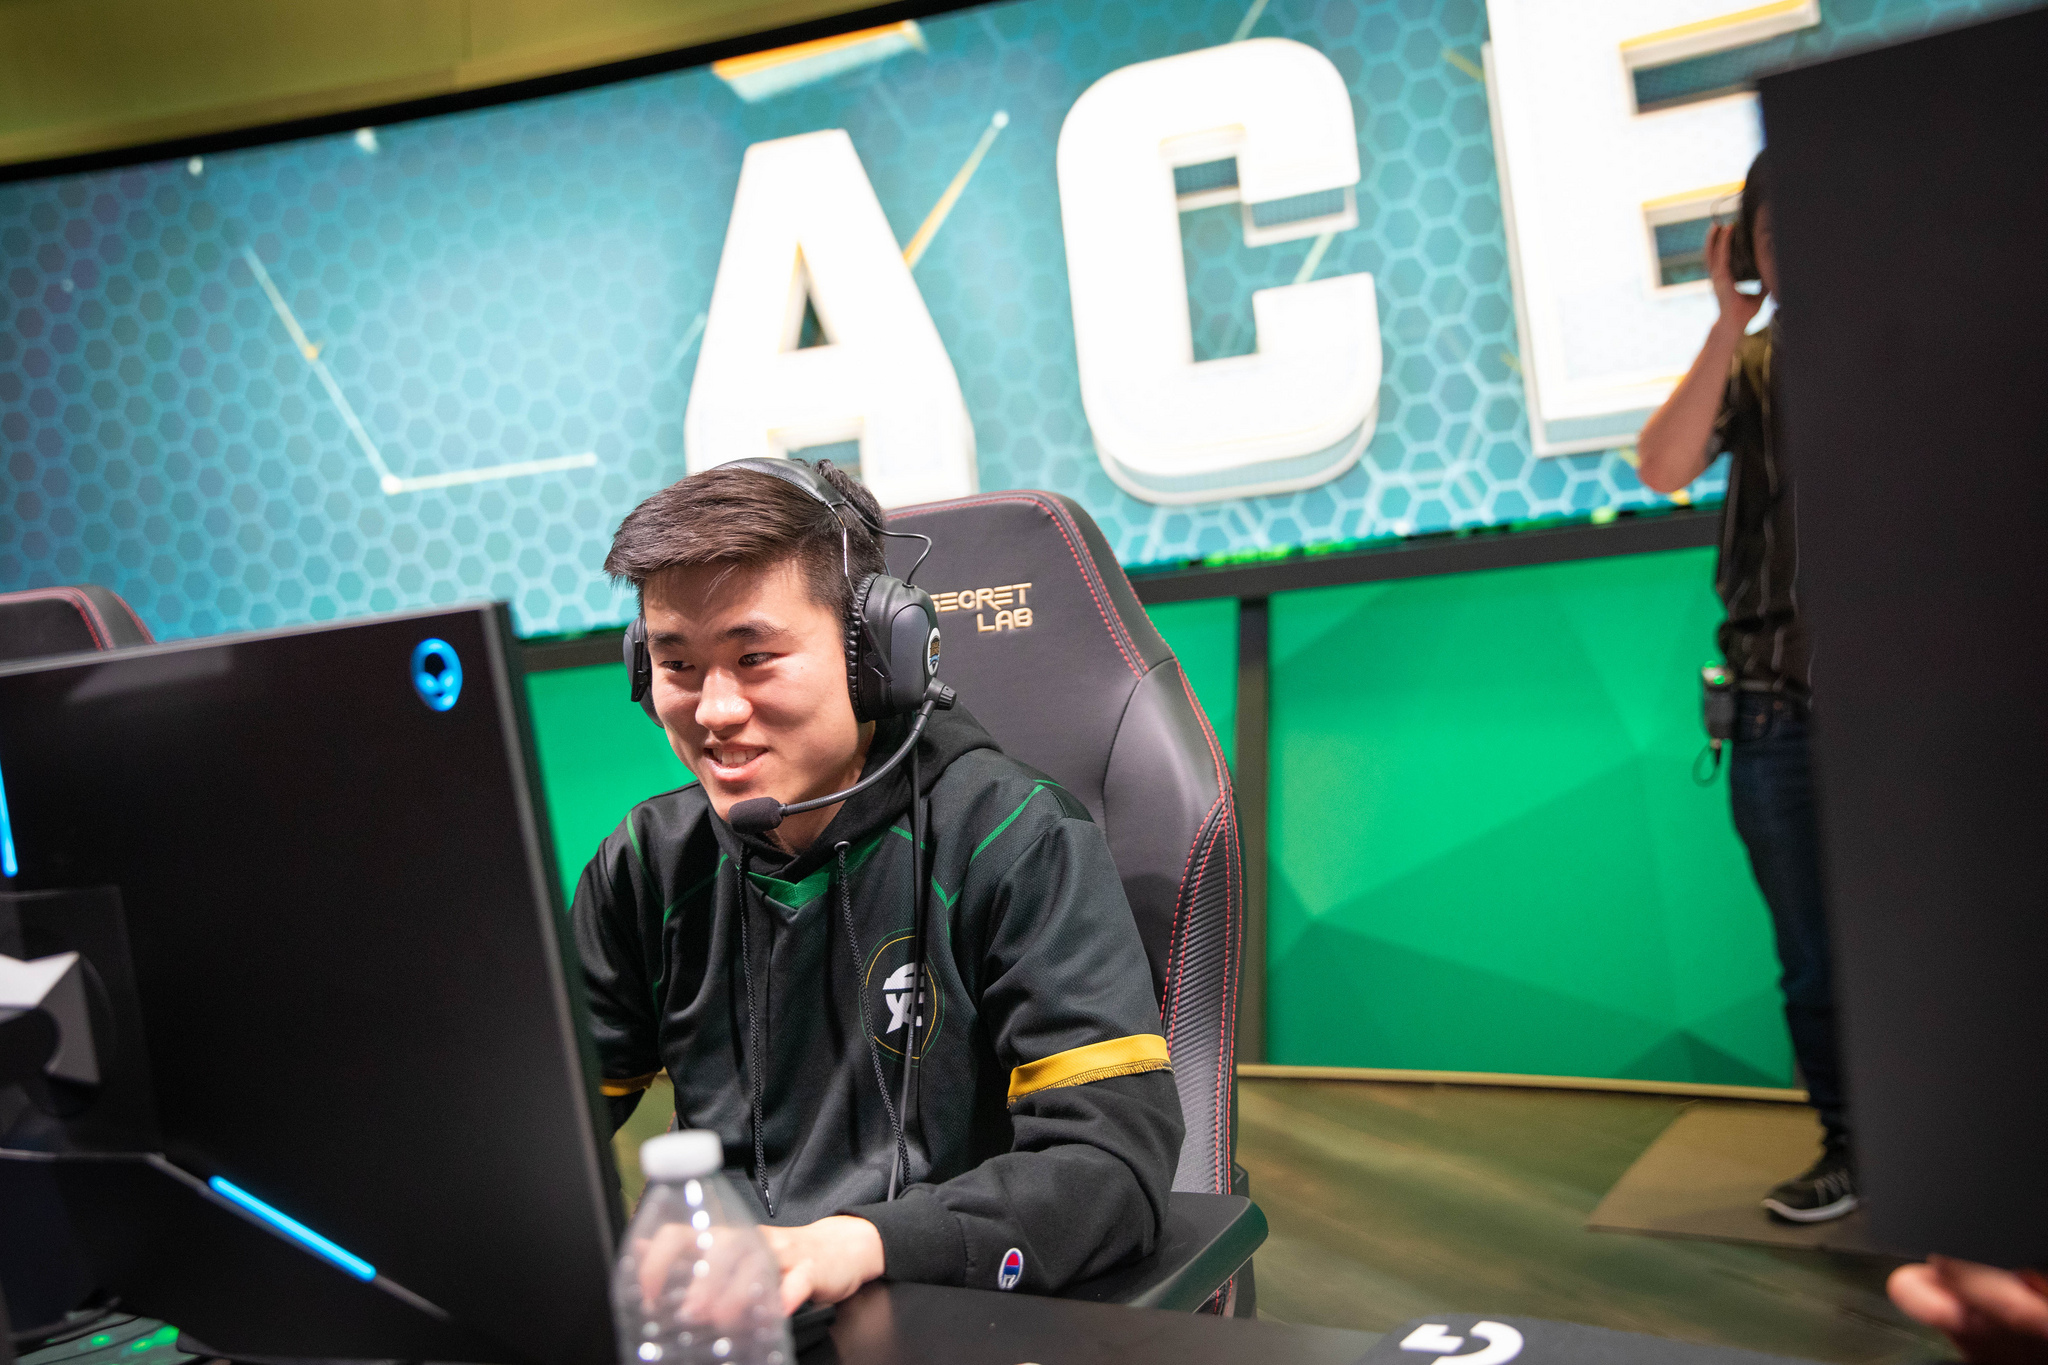 LCS Flyquest win